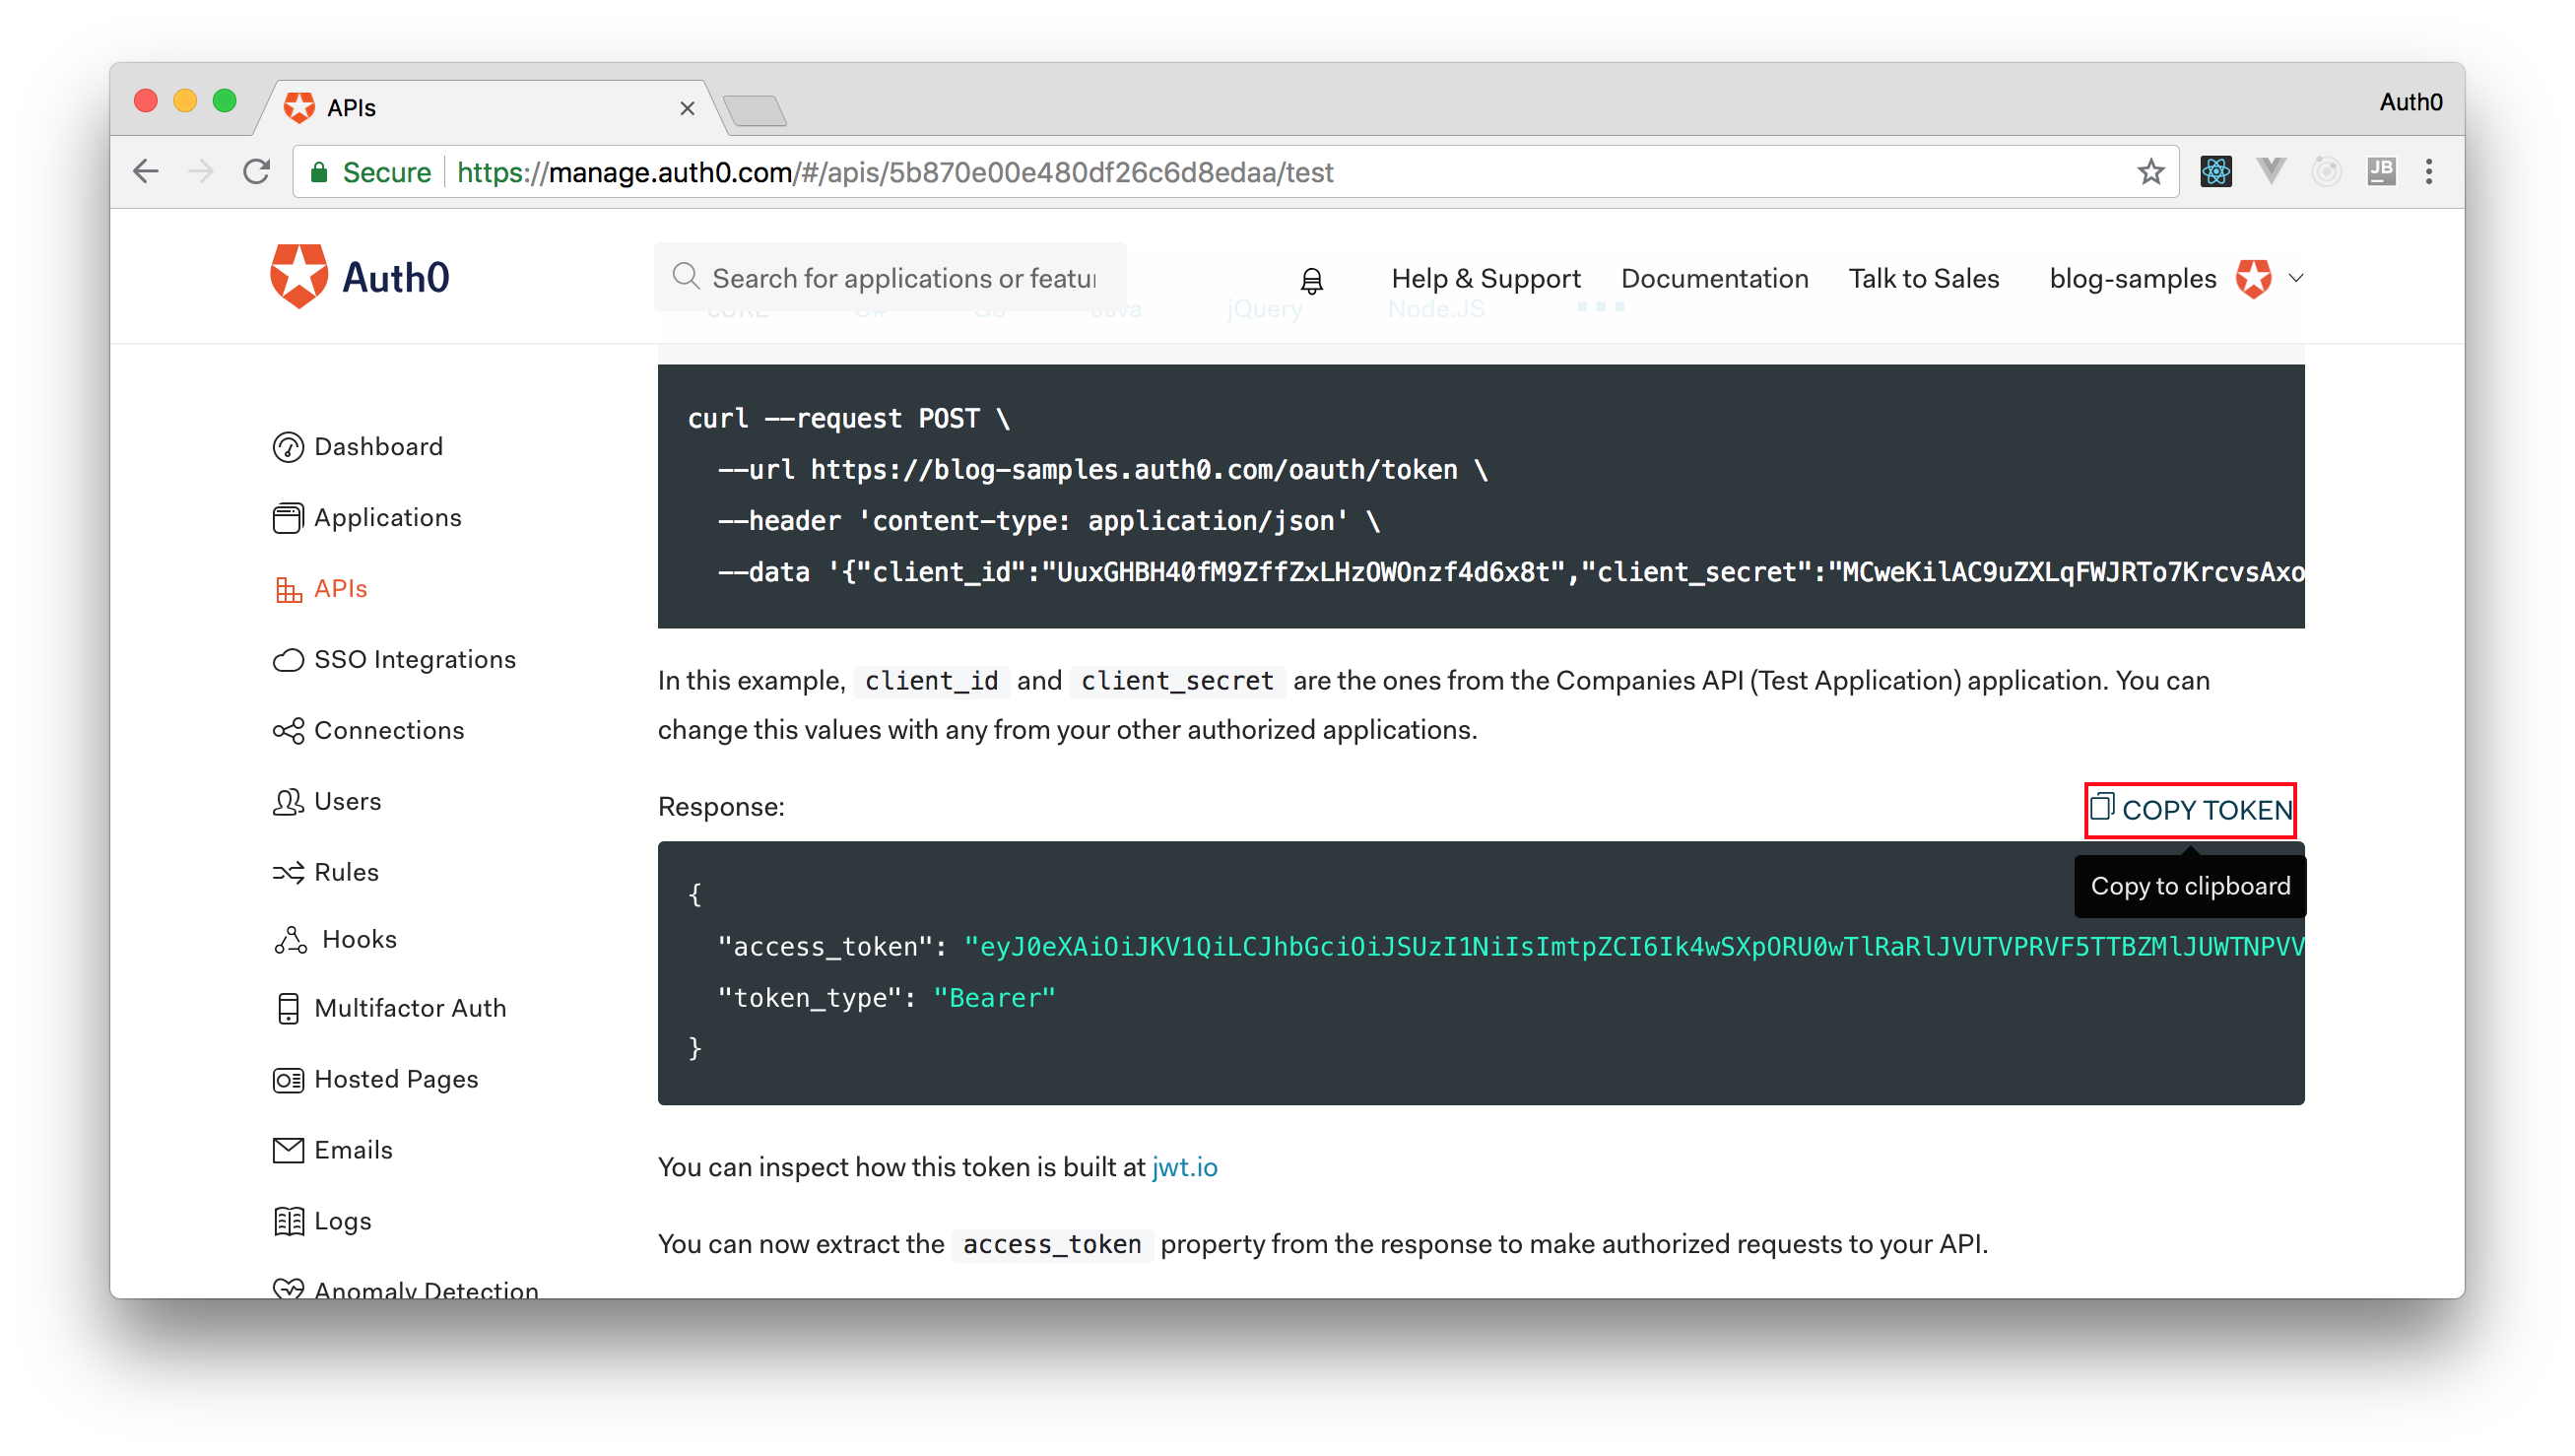 Copying test token from your Auth0 API